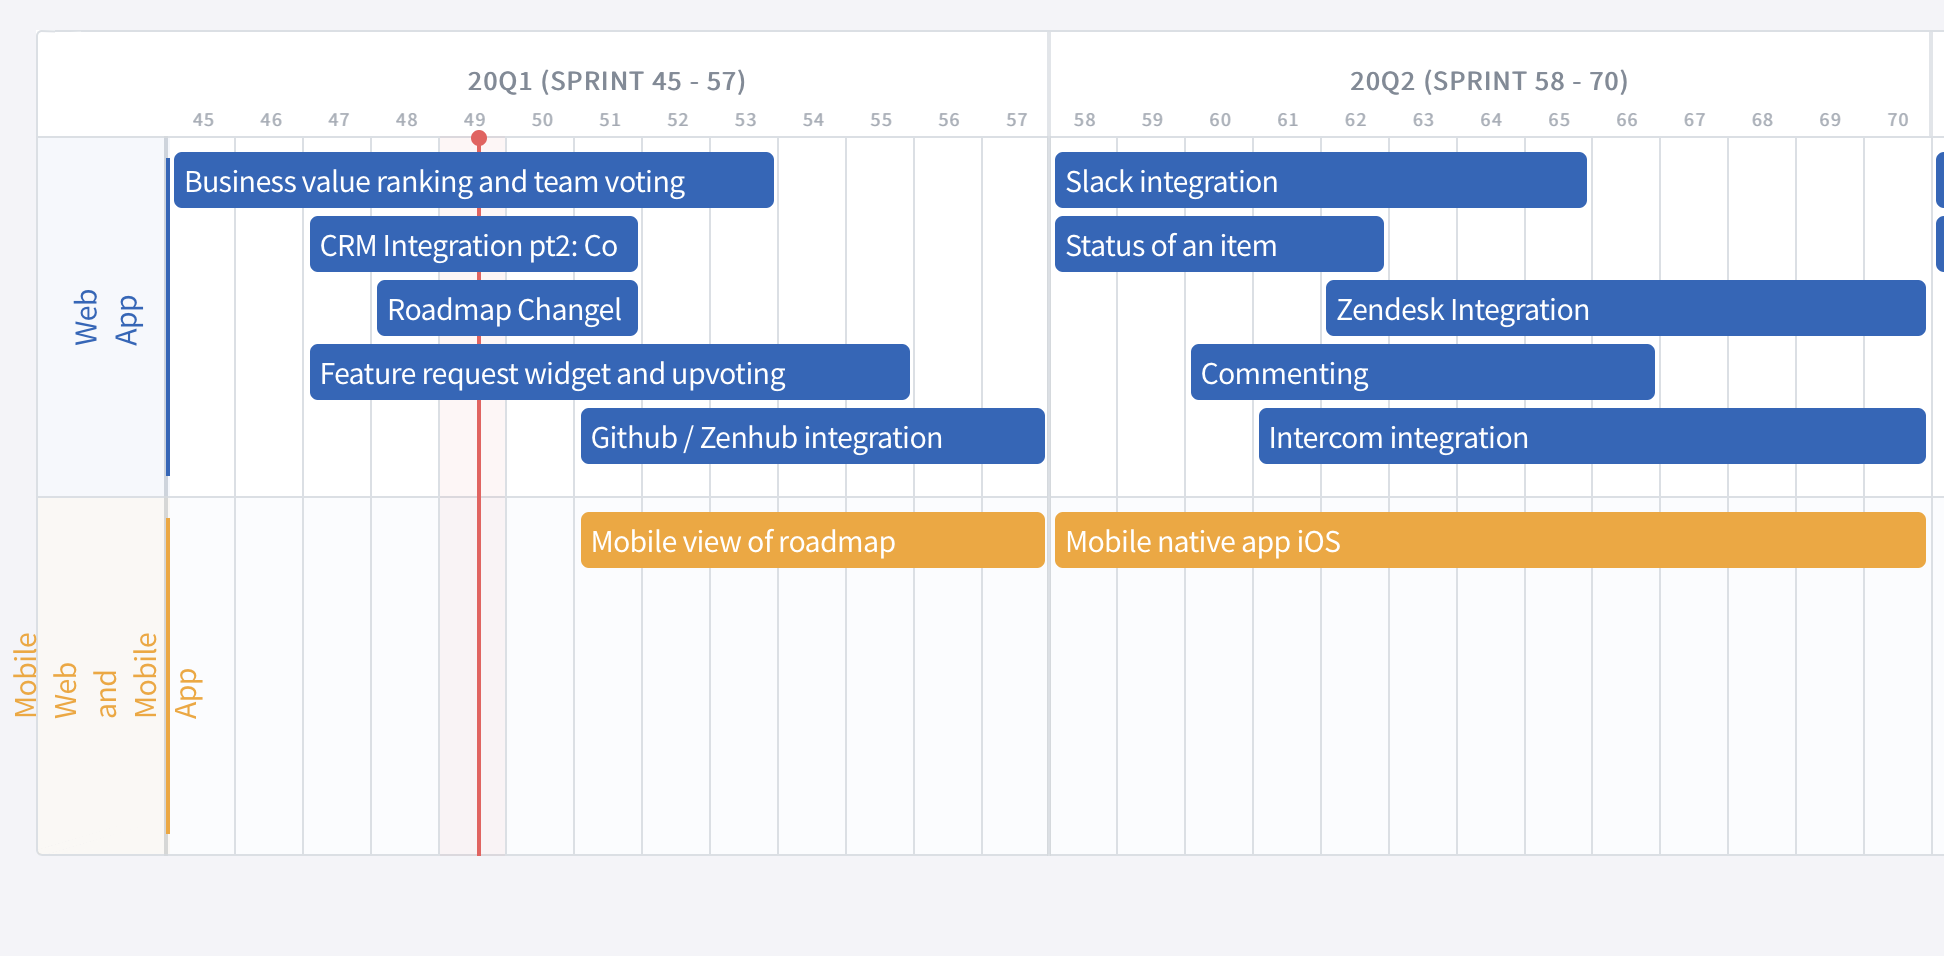 Gantt style view of product roadmap